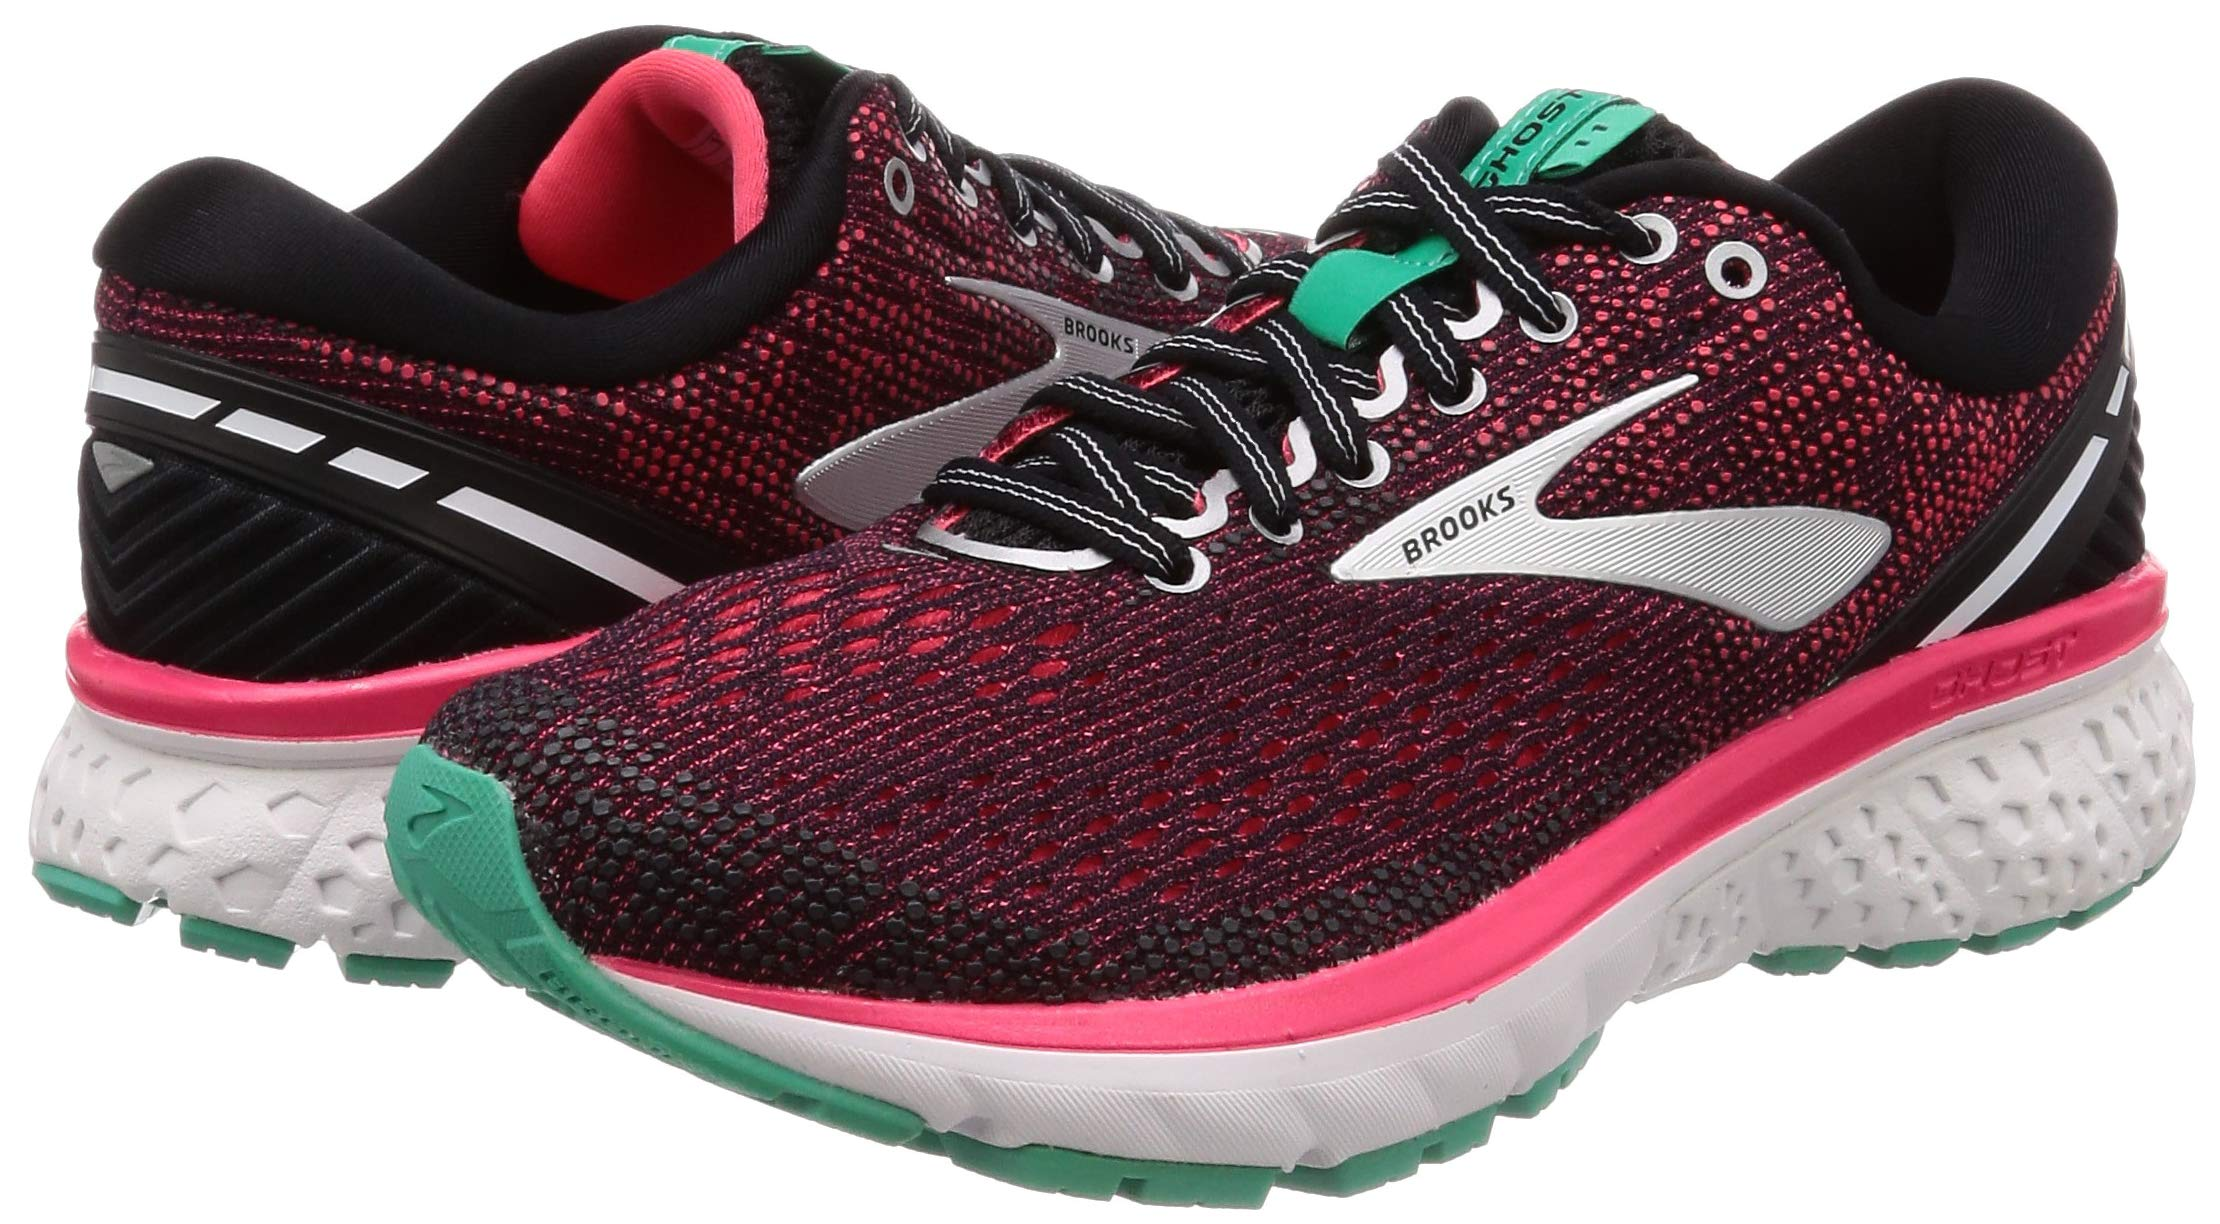 Brooks Womens Ghost 11 Running Shoe - Black/Pink/Aqua - D - 5.5 by Brooks (Image #5)